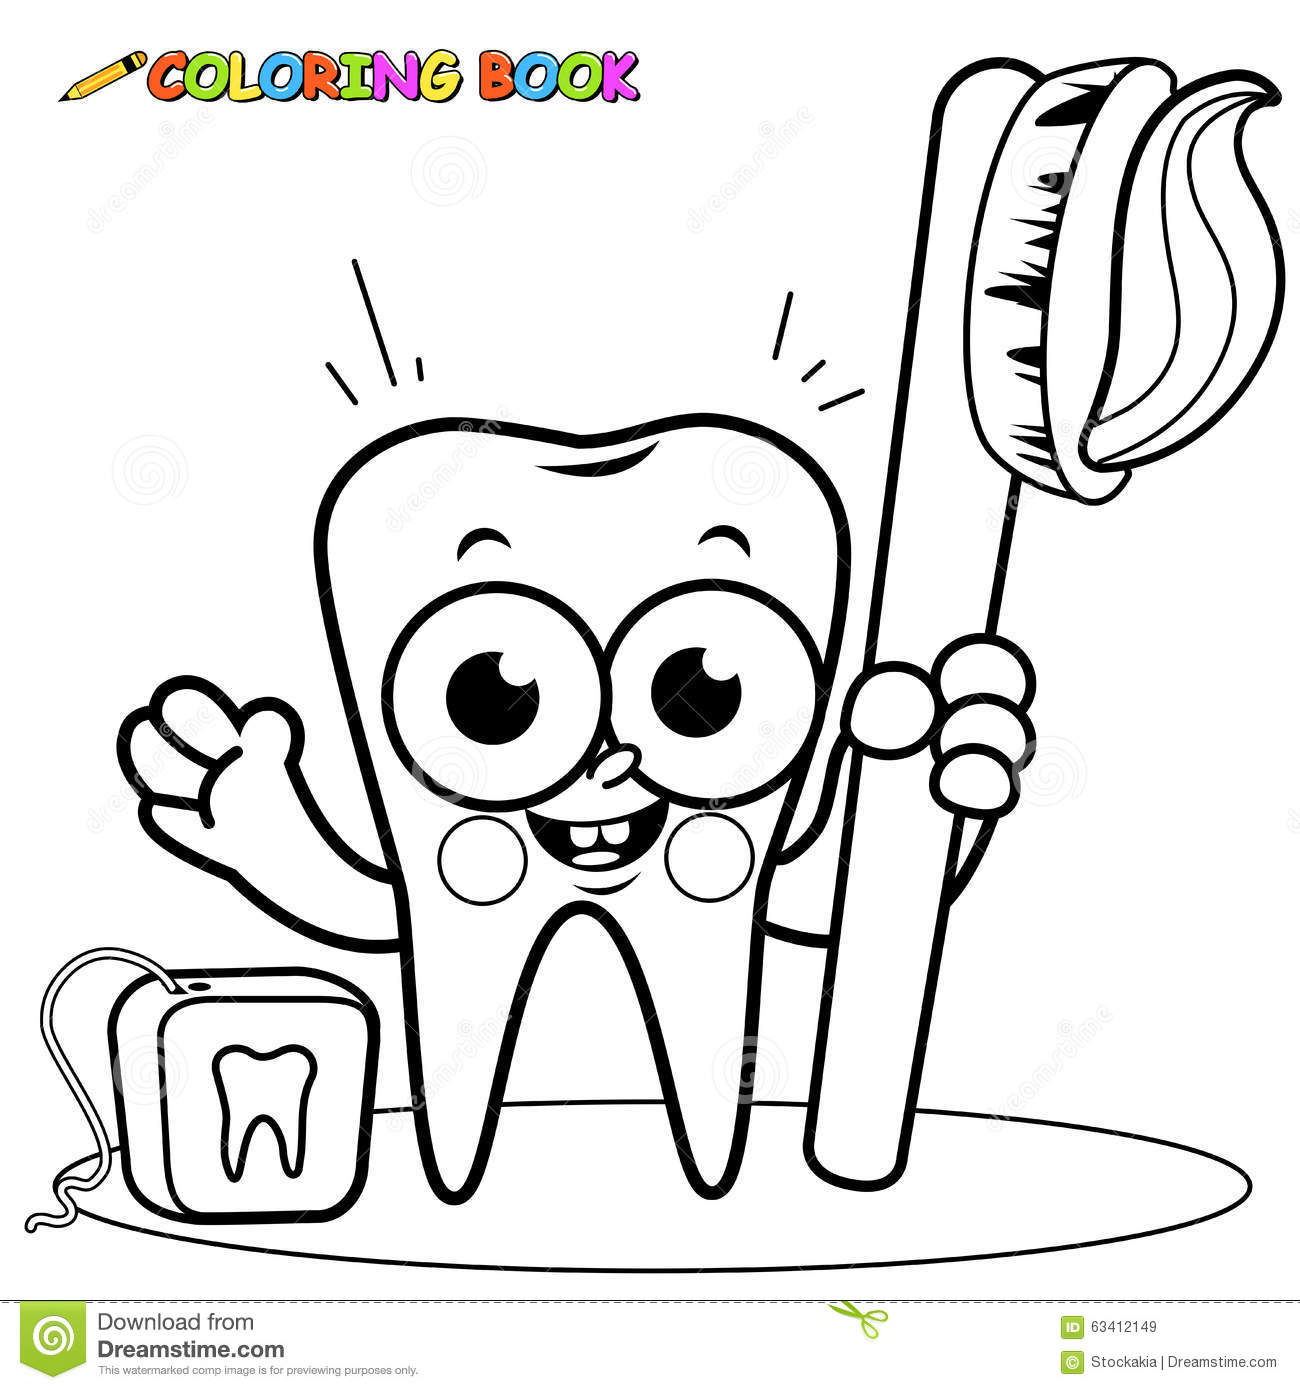 Colouring in pages dental - Royalty Free Vector Download Coloring Page Tooth